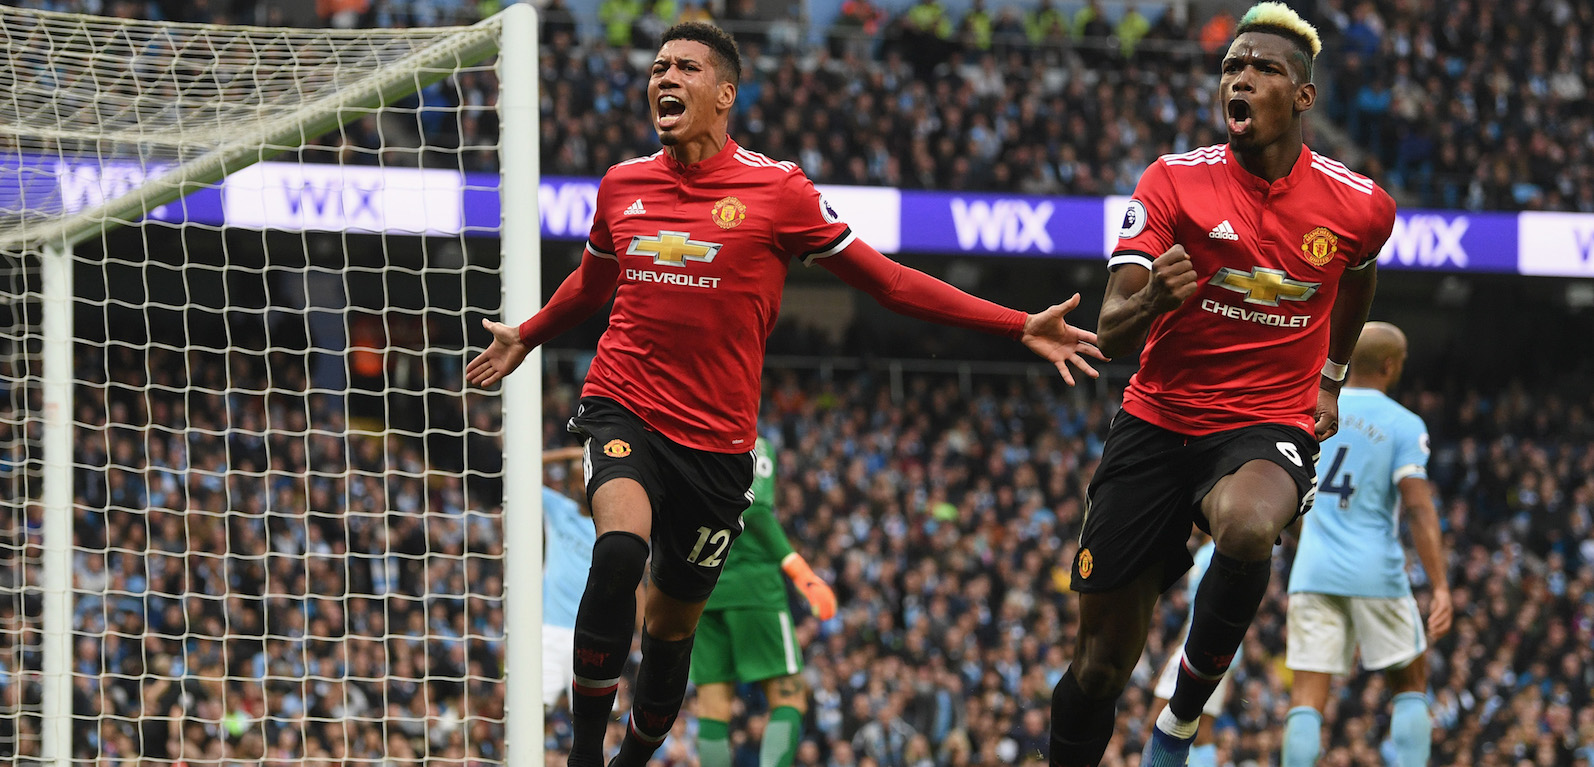 Chris Smalling: Manchester United are eyeing Premier League glory this season